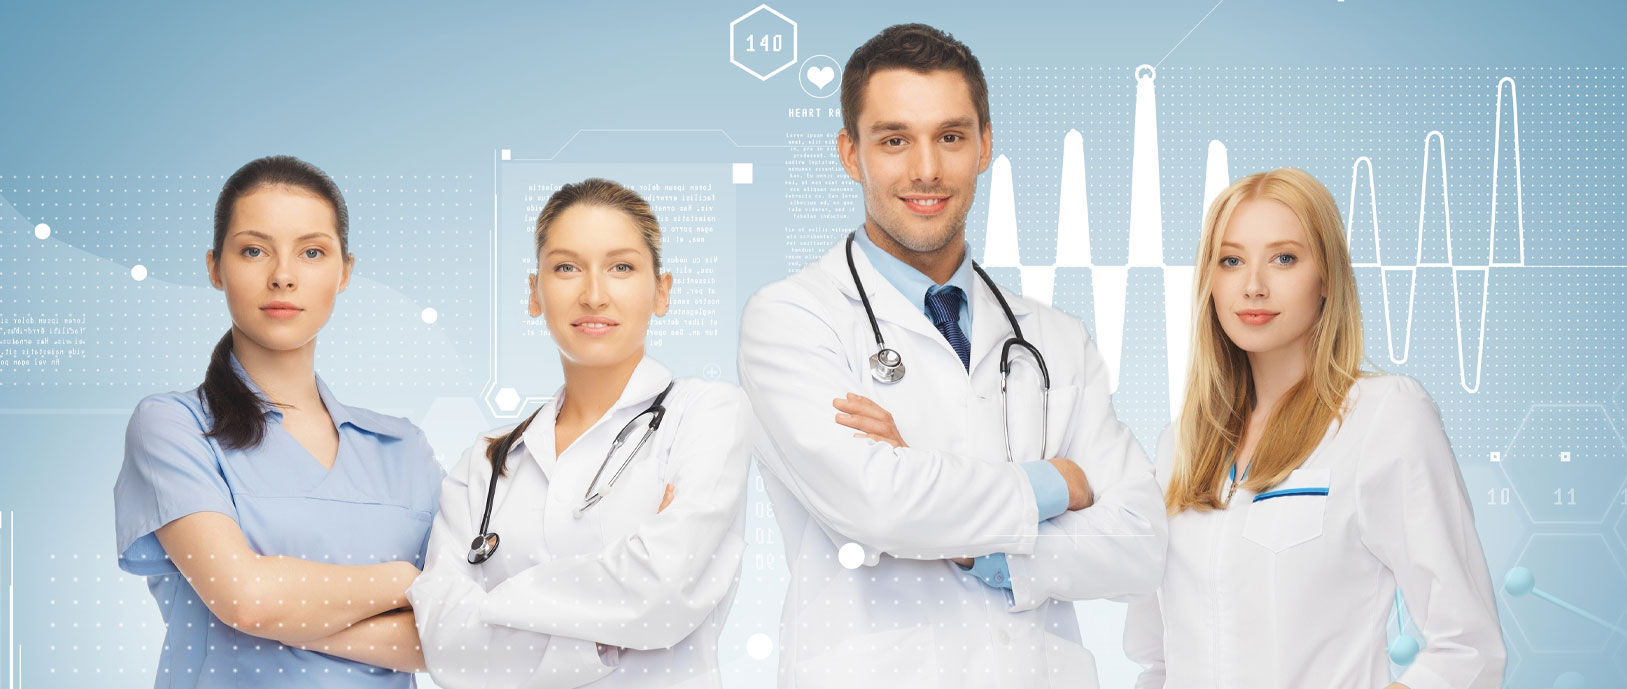 Group of four male and female medical professionals posing for a photo with data analytic graphics in the background